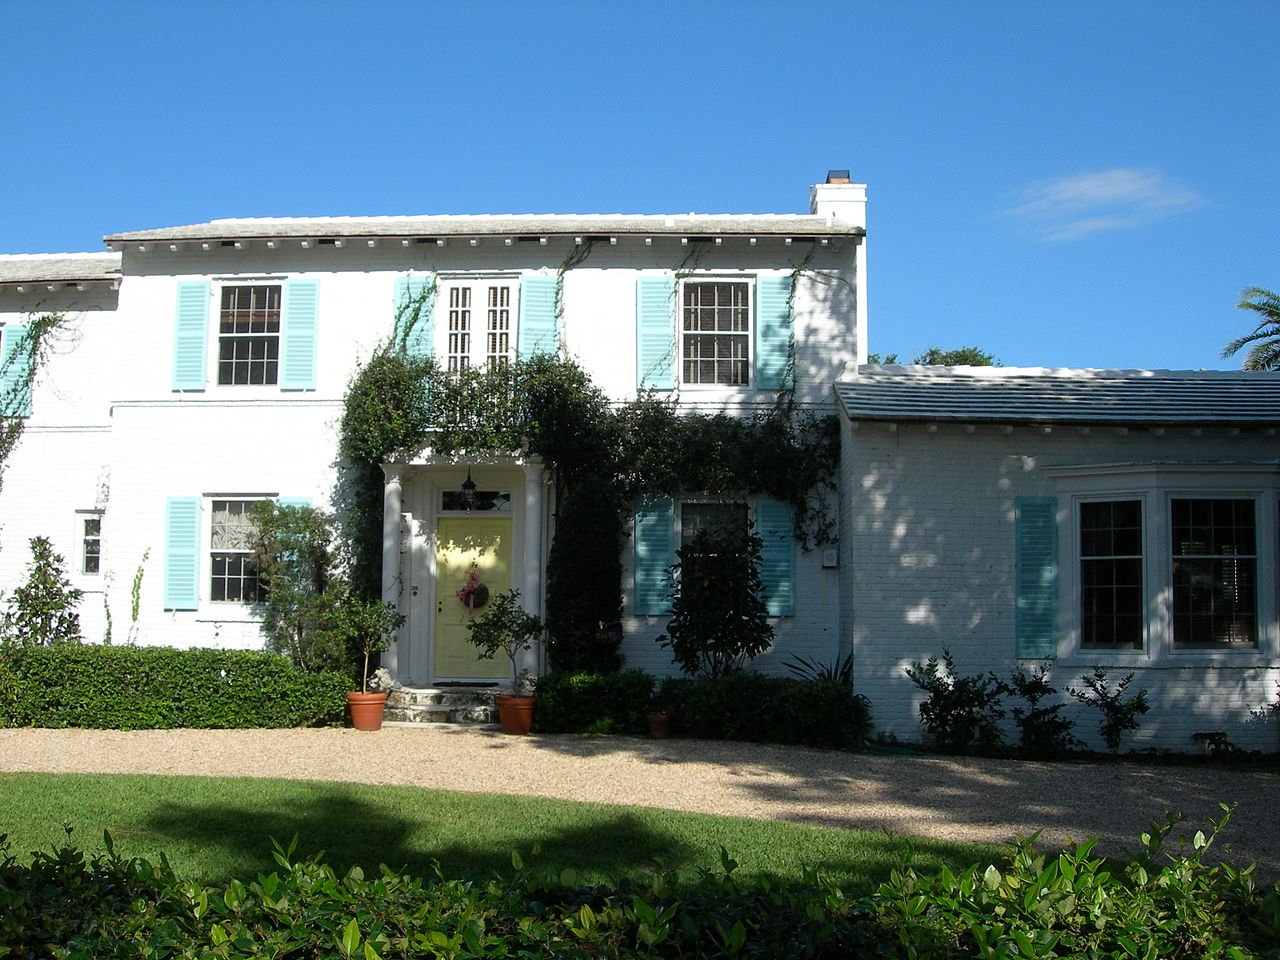 Built in 1937, the Cocoanut Road House is a fine example of Colonial Revival architecture.